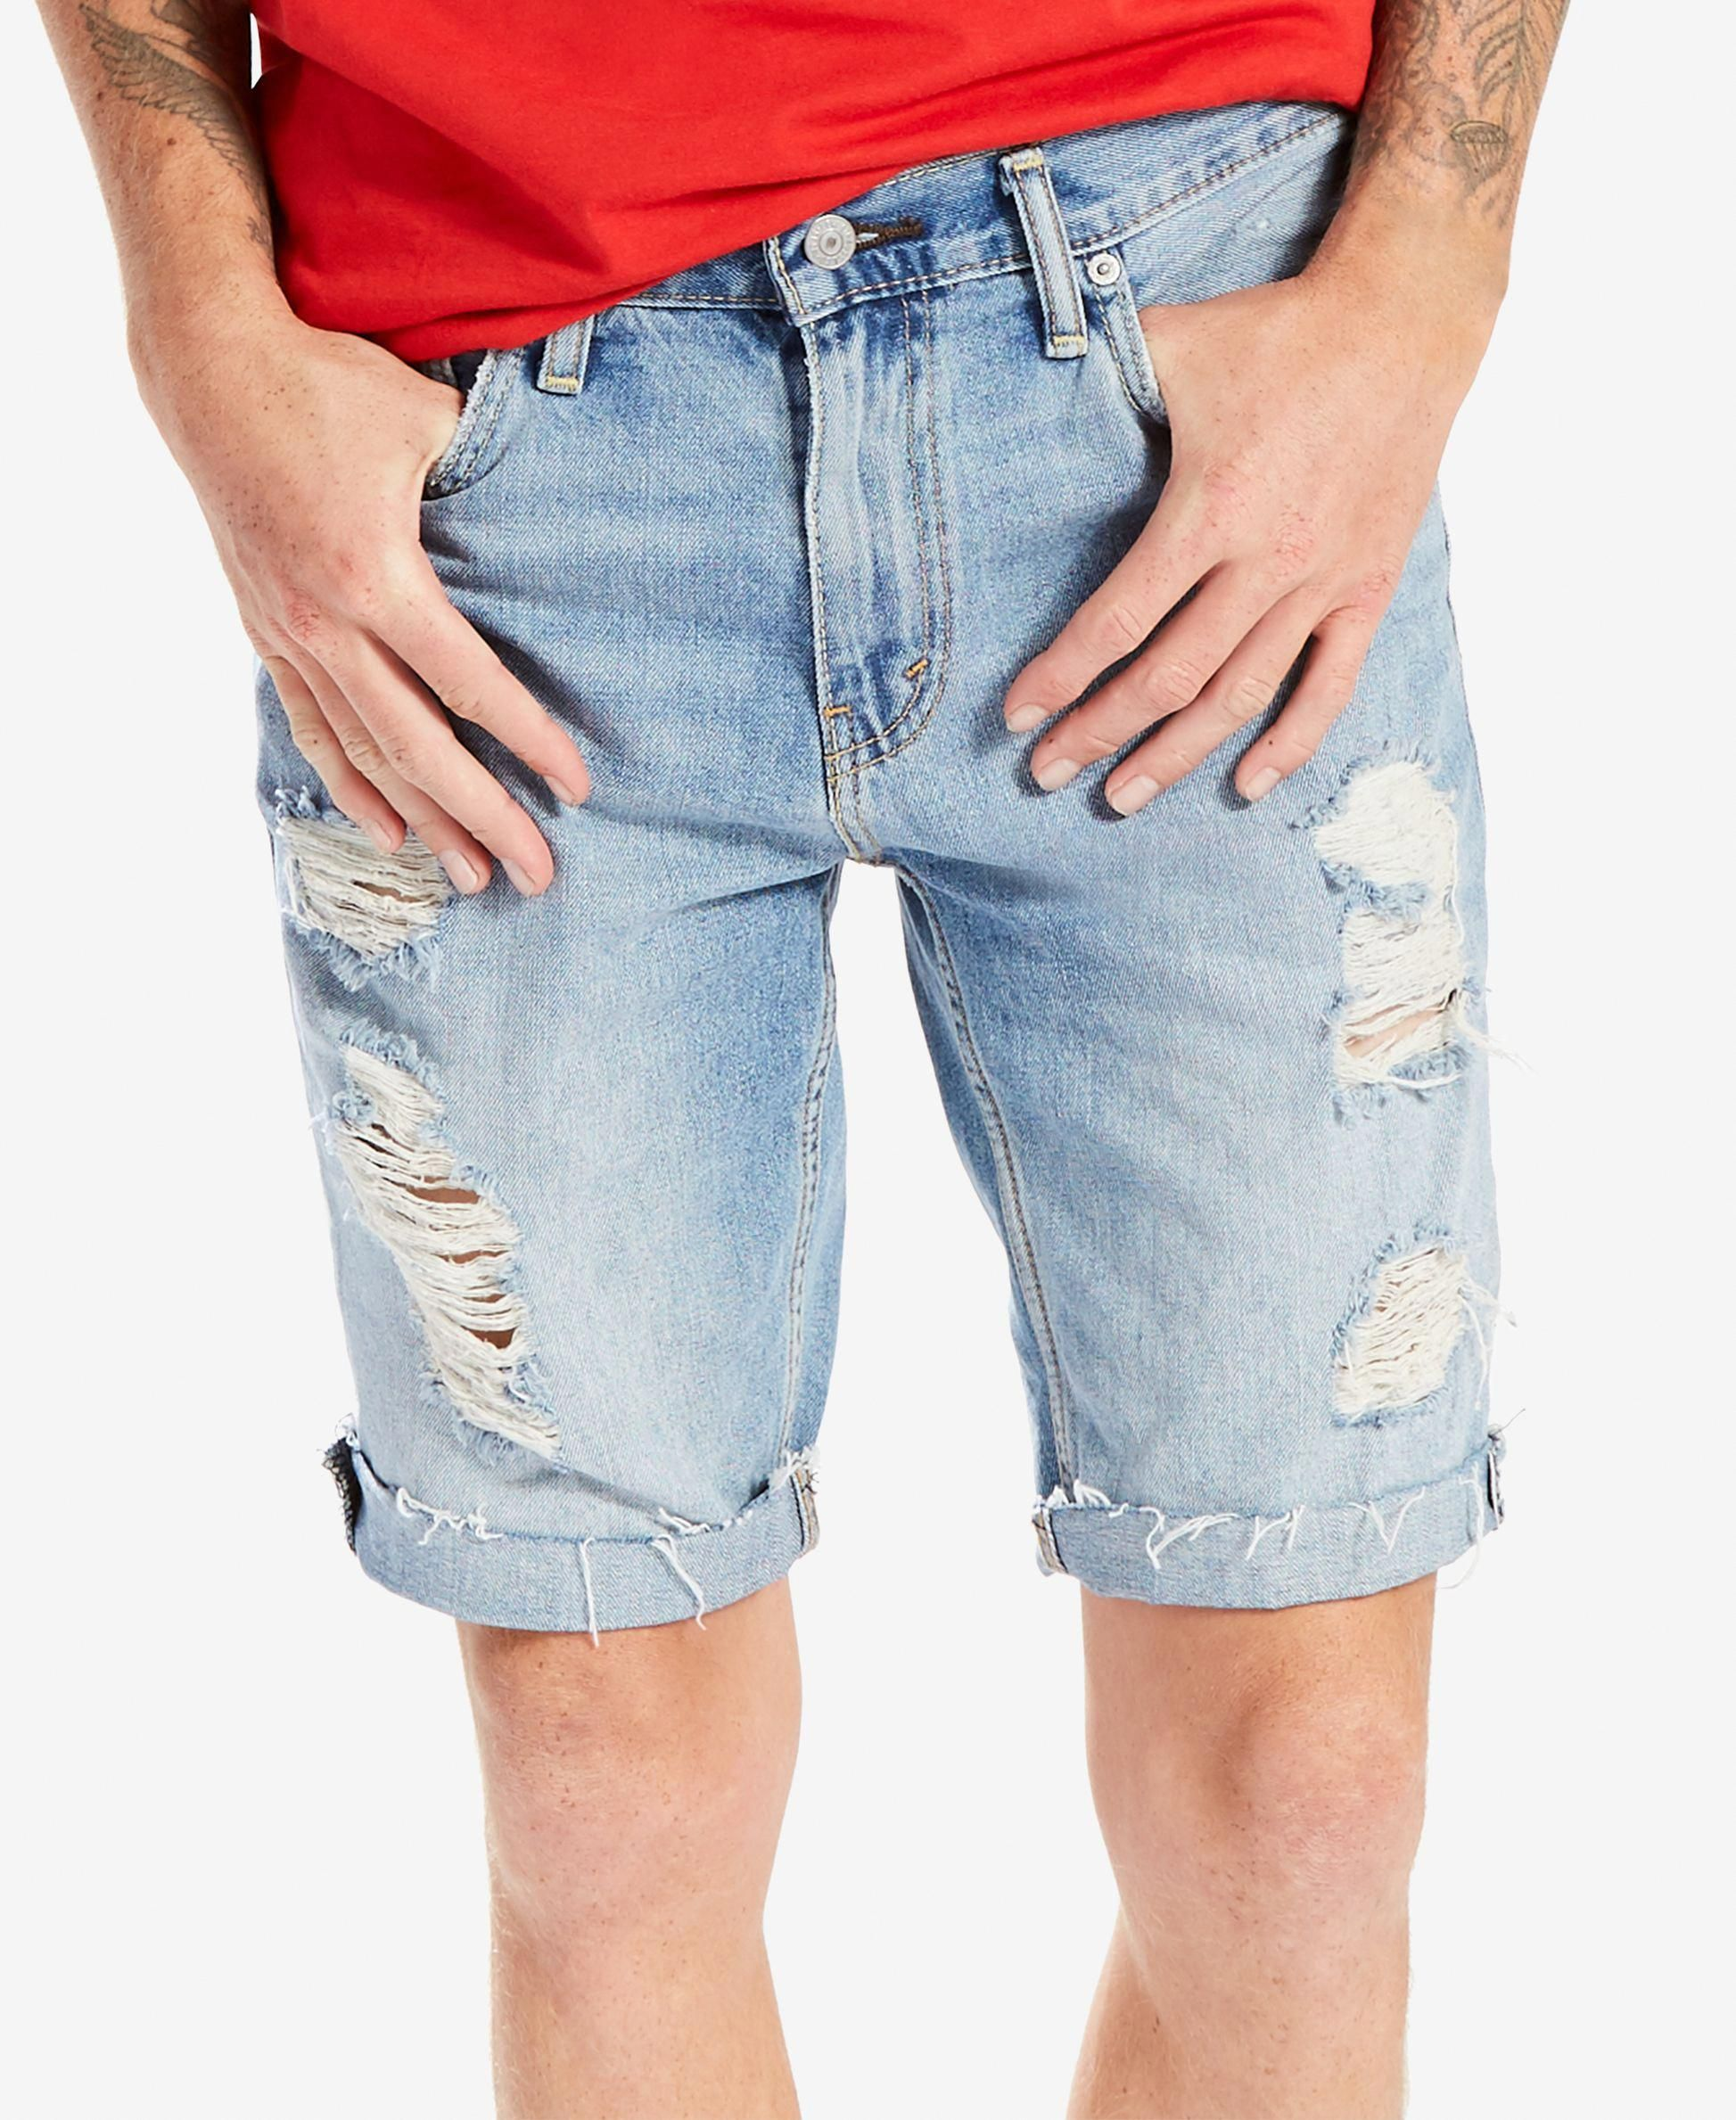 e795ffc1580863 Levi s Men s 511 Slim-Fit Cutoff Ripped Jean Shorts  MensJeans ...